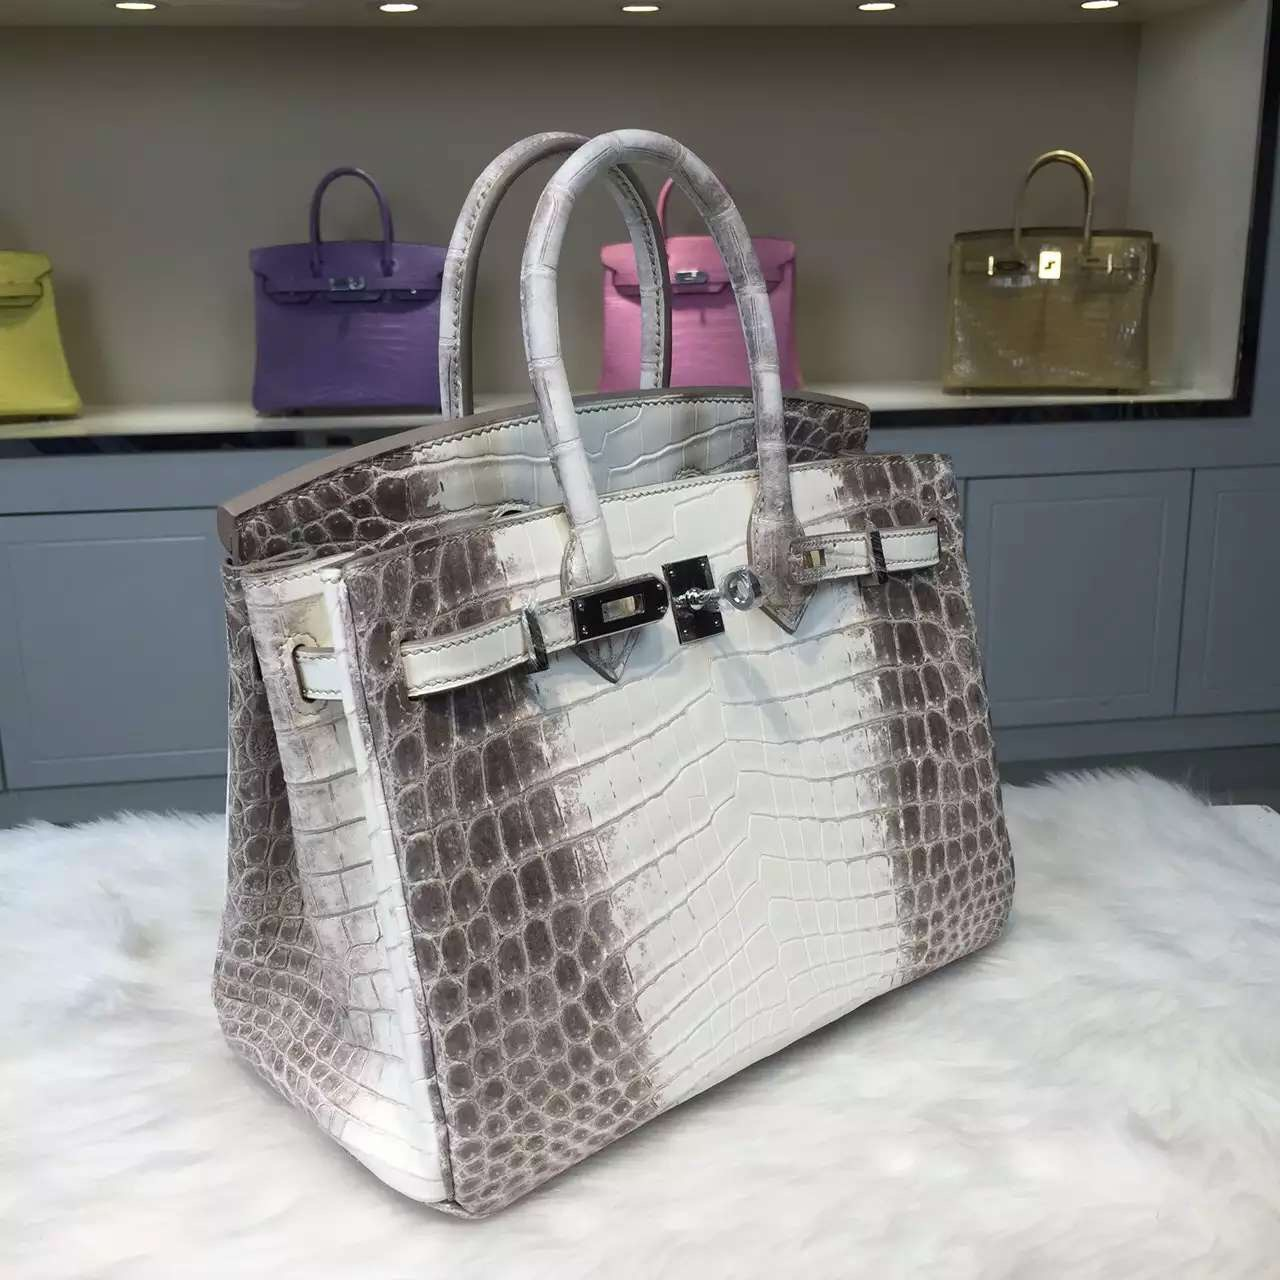 Elegant Hermes Himalaya Crocodile Skin Birkin Bag 25CM Luxury Women's Tote Bag